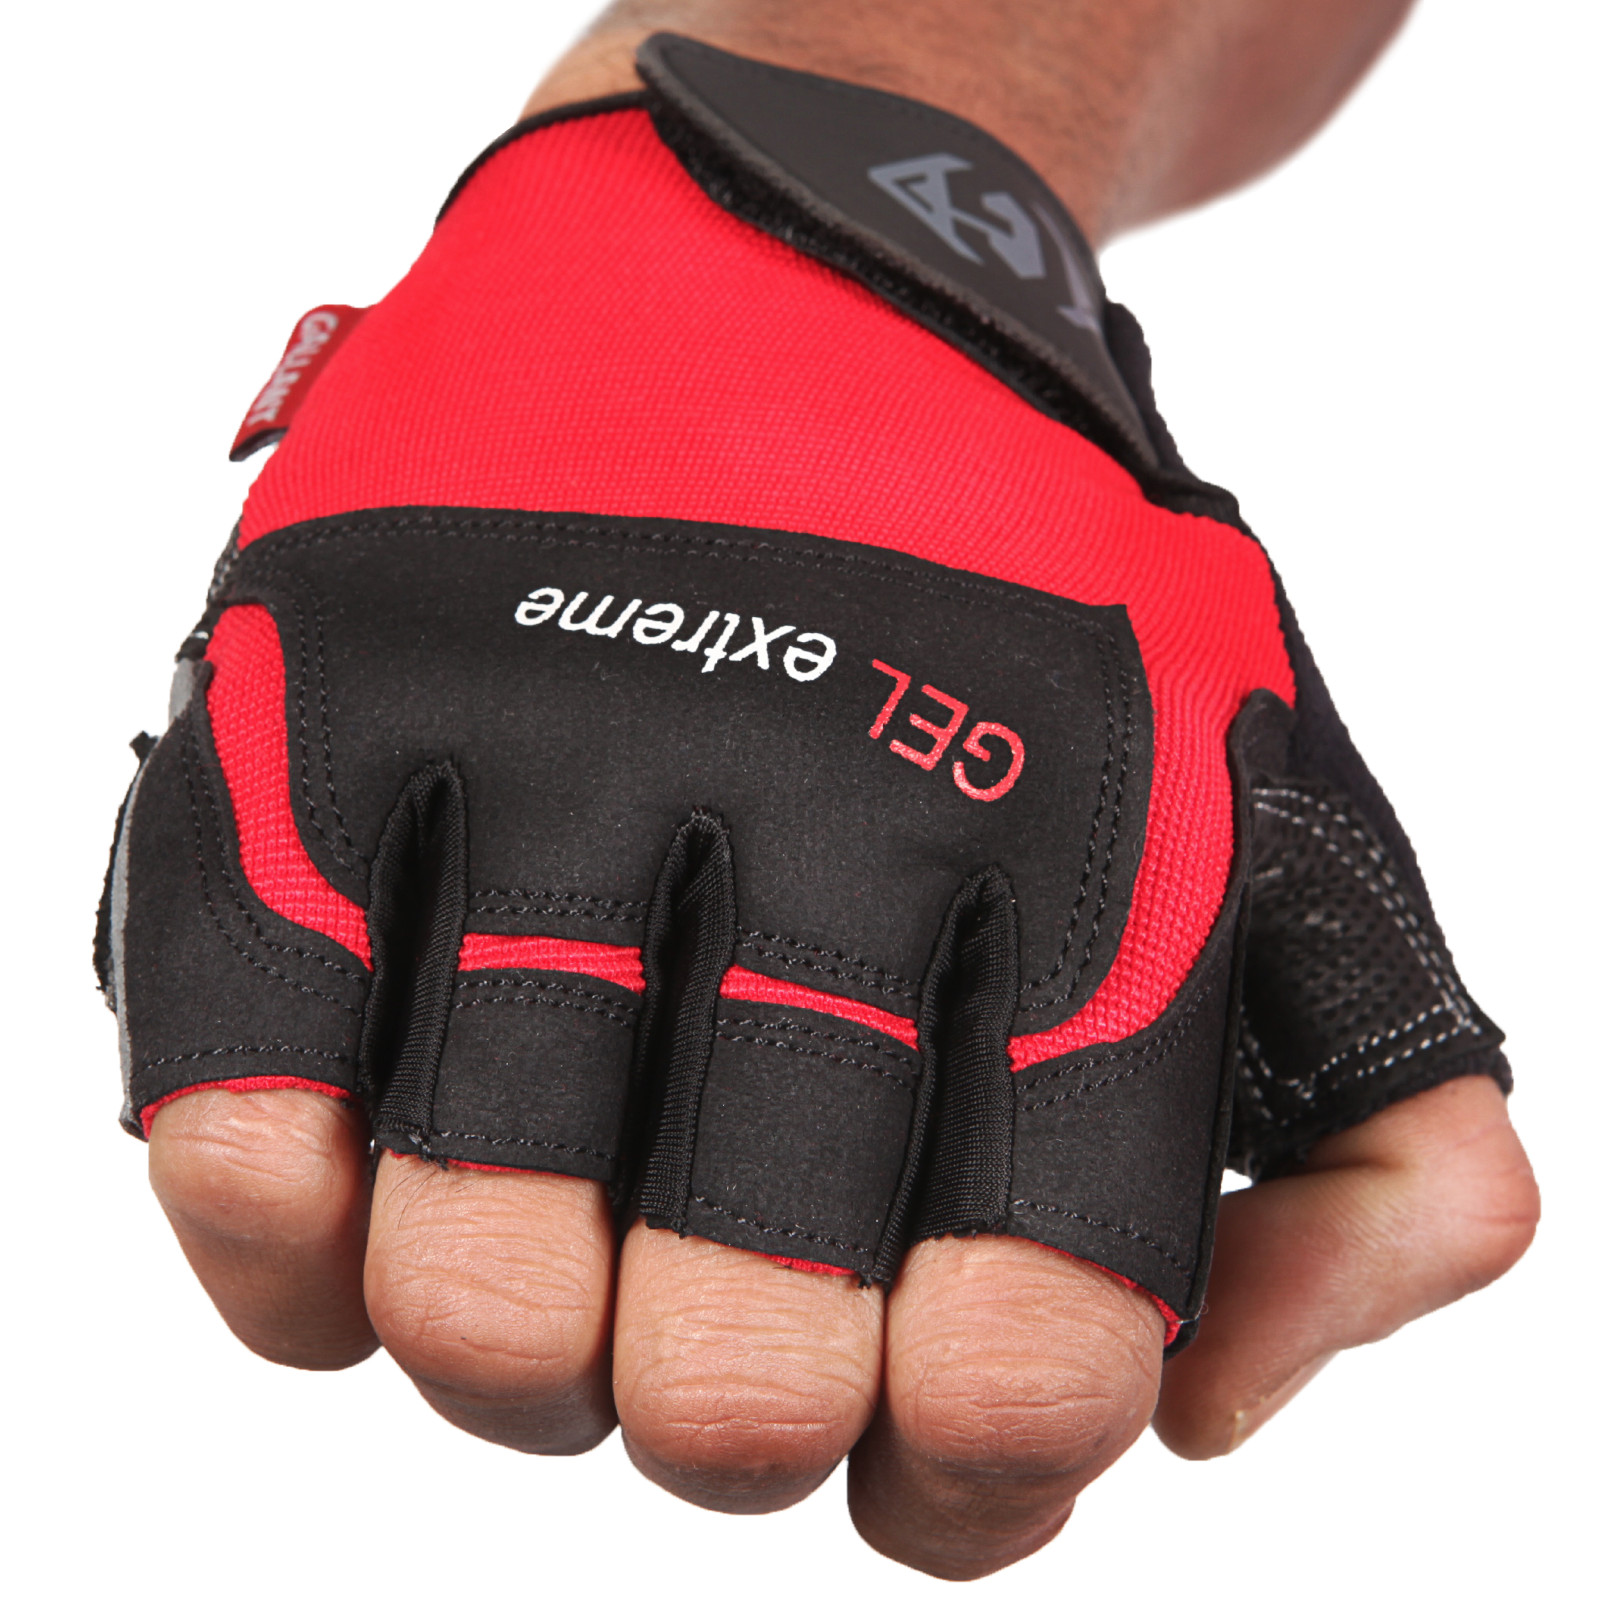 Weight Lifting Gloves: Gallant Gel Weight Lifting Body Building Training Gym